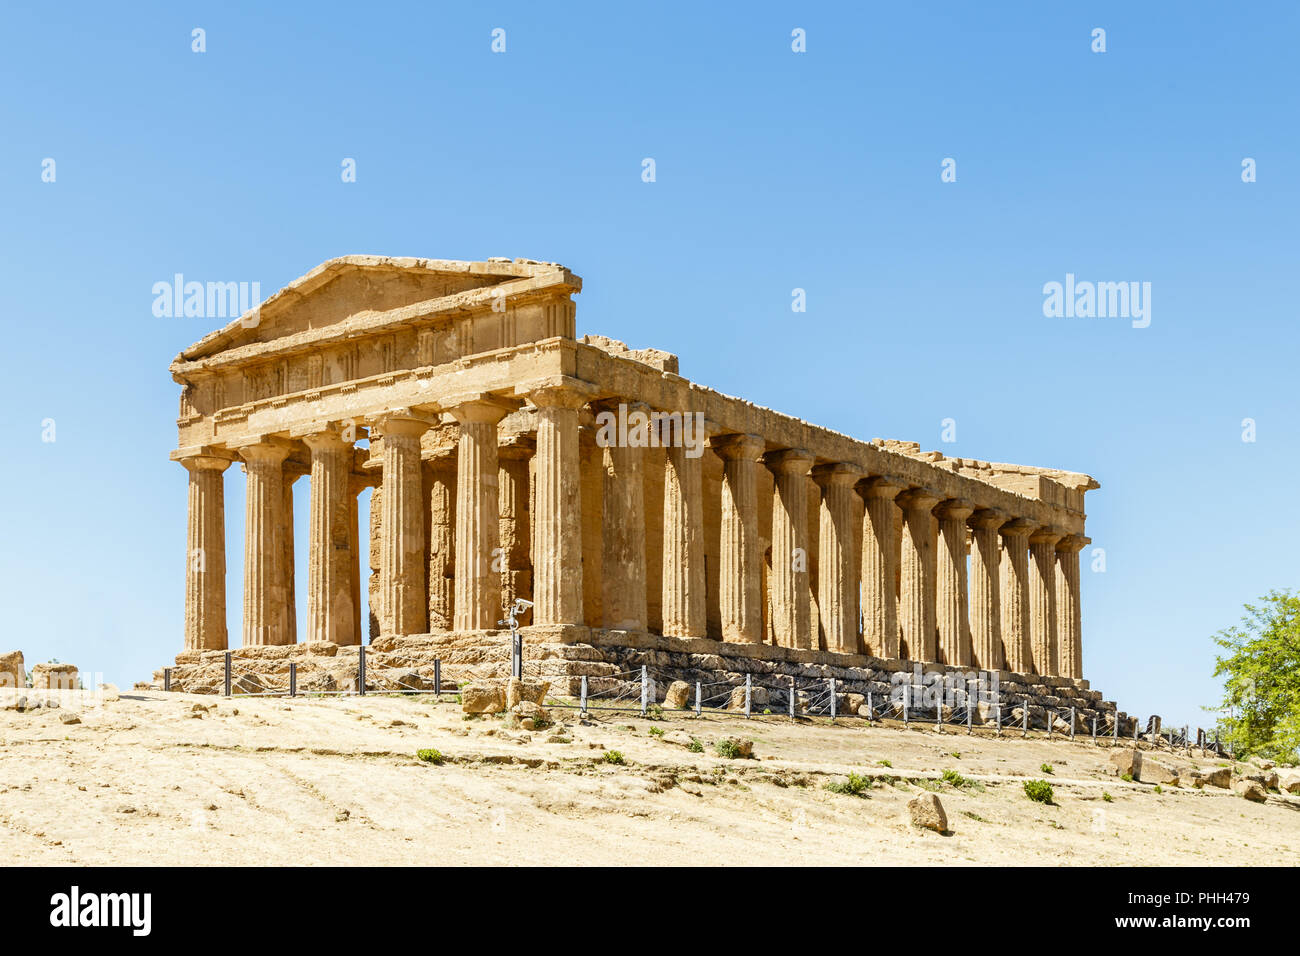 Valley of the Temples, Agrigento, Sicily, Italy - Stock Image